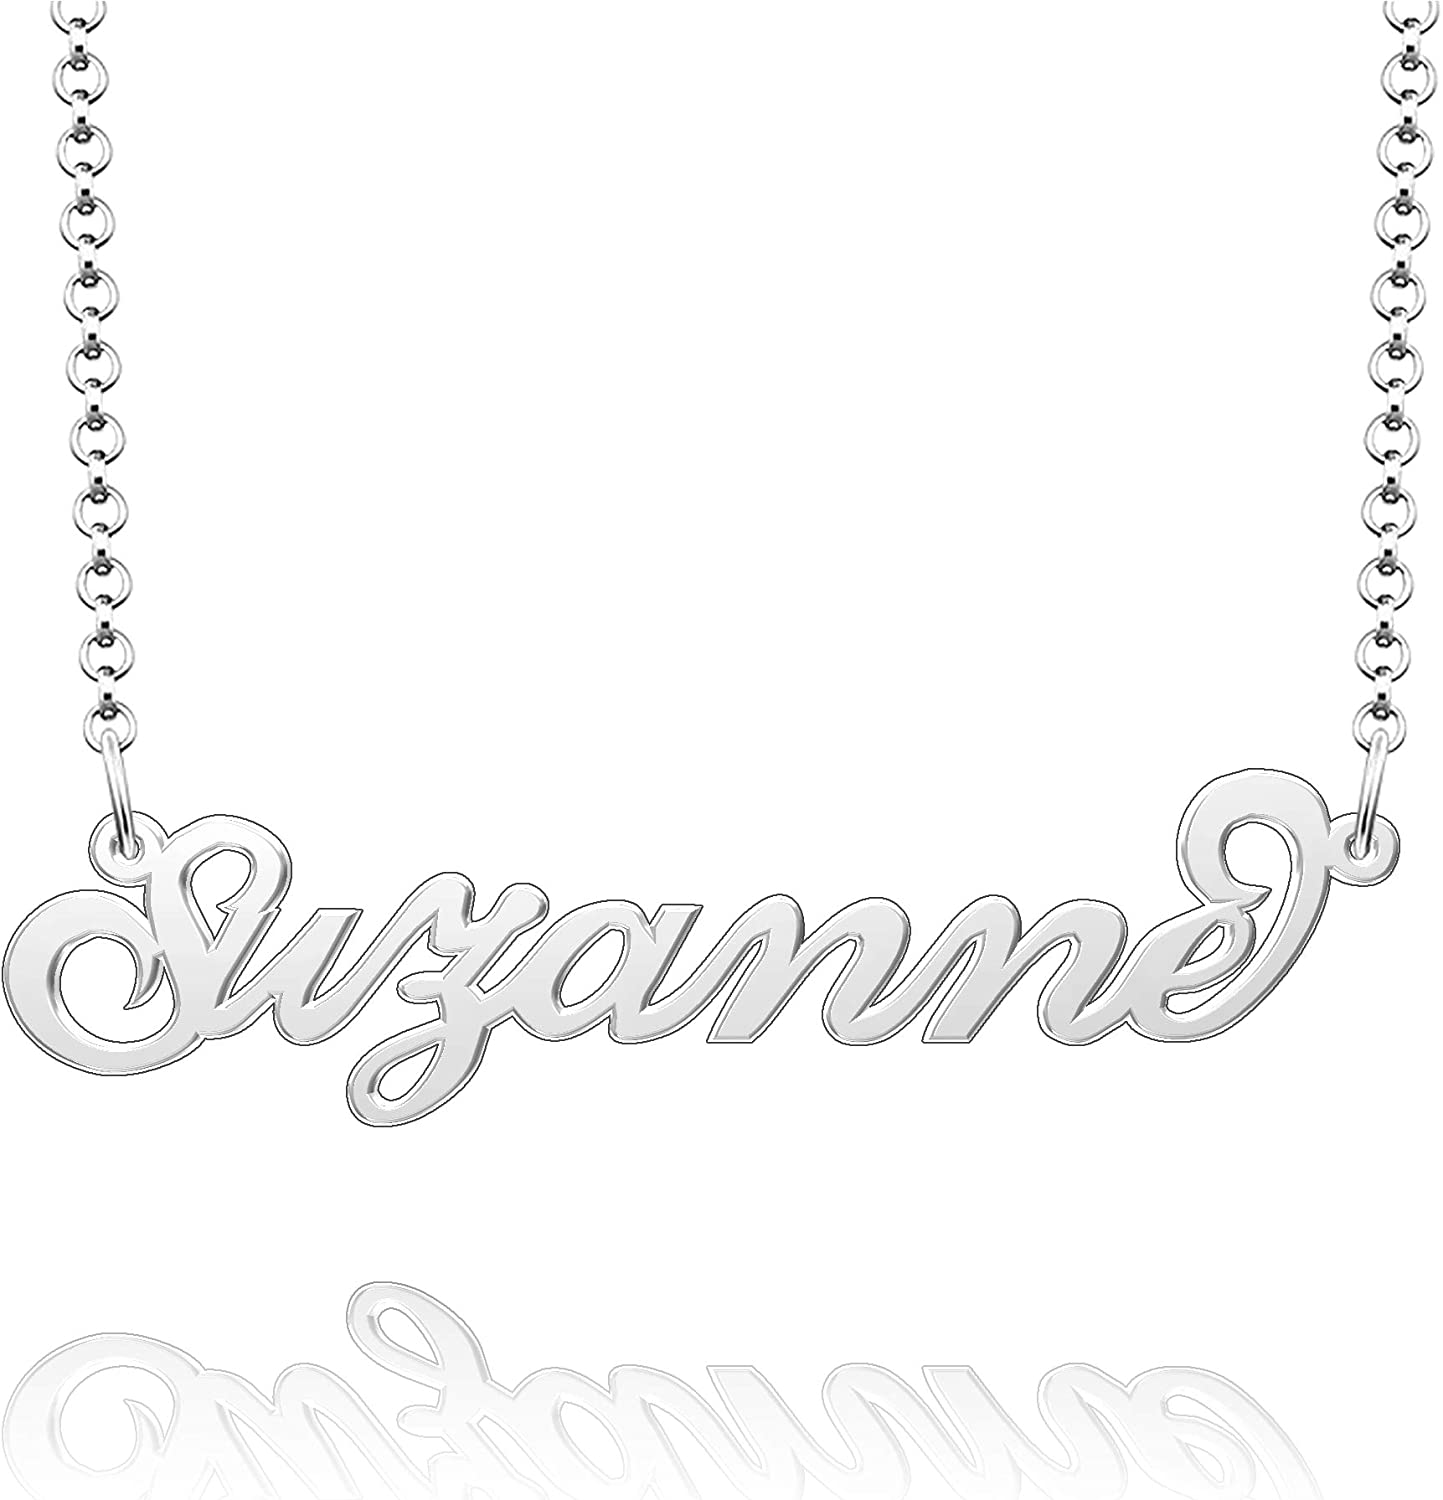 Moonlight Collections Script Necklace 951 Sterling Silver Pendant Chain Personalized Necklace Suzanne